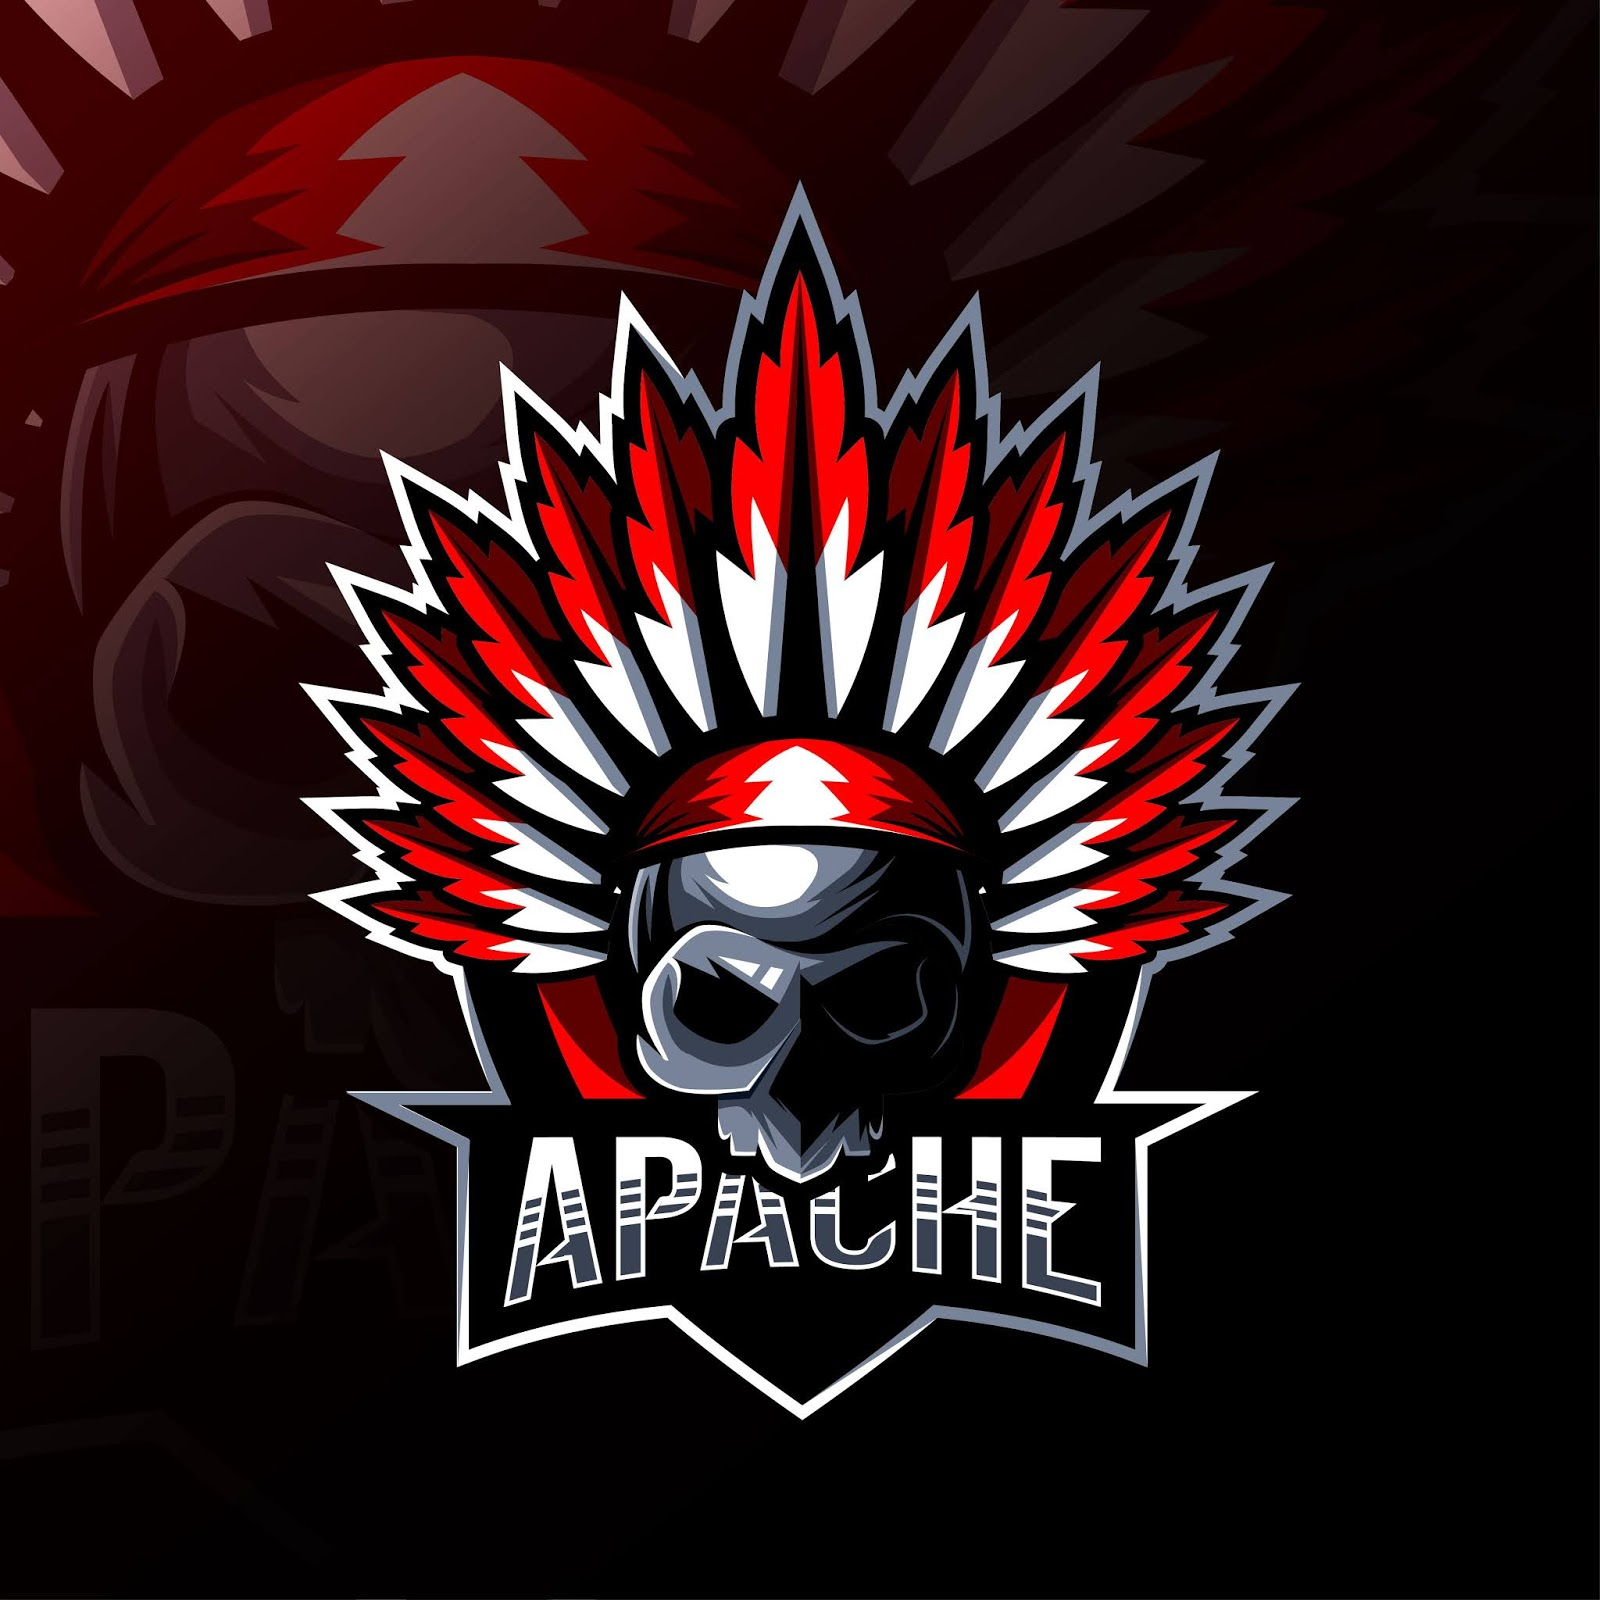 Apache Mascot Logo Esport Design Free Download Vector CDR, AI, EPS and PNG Formats